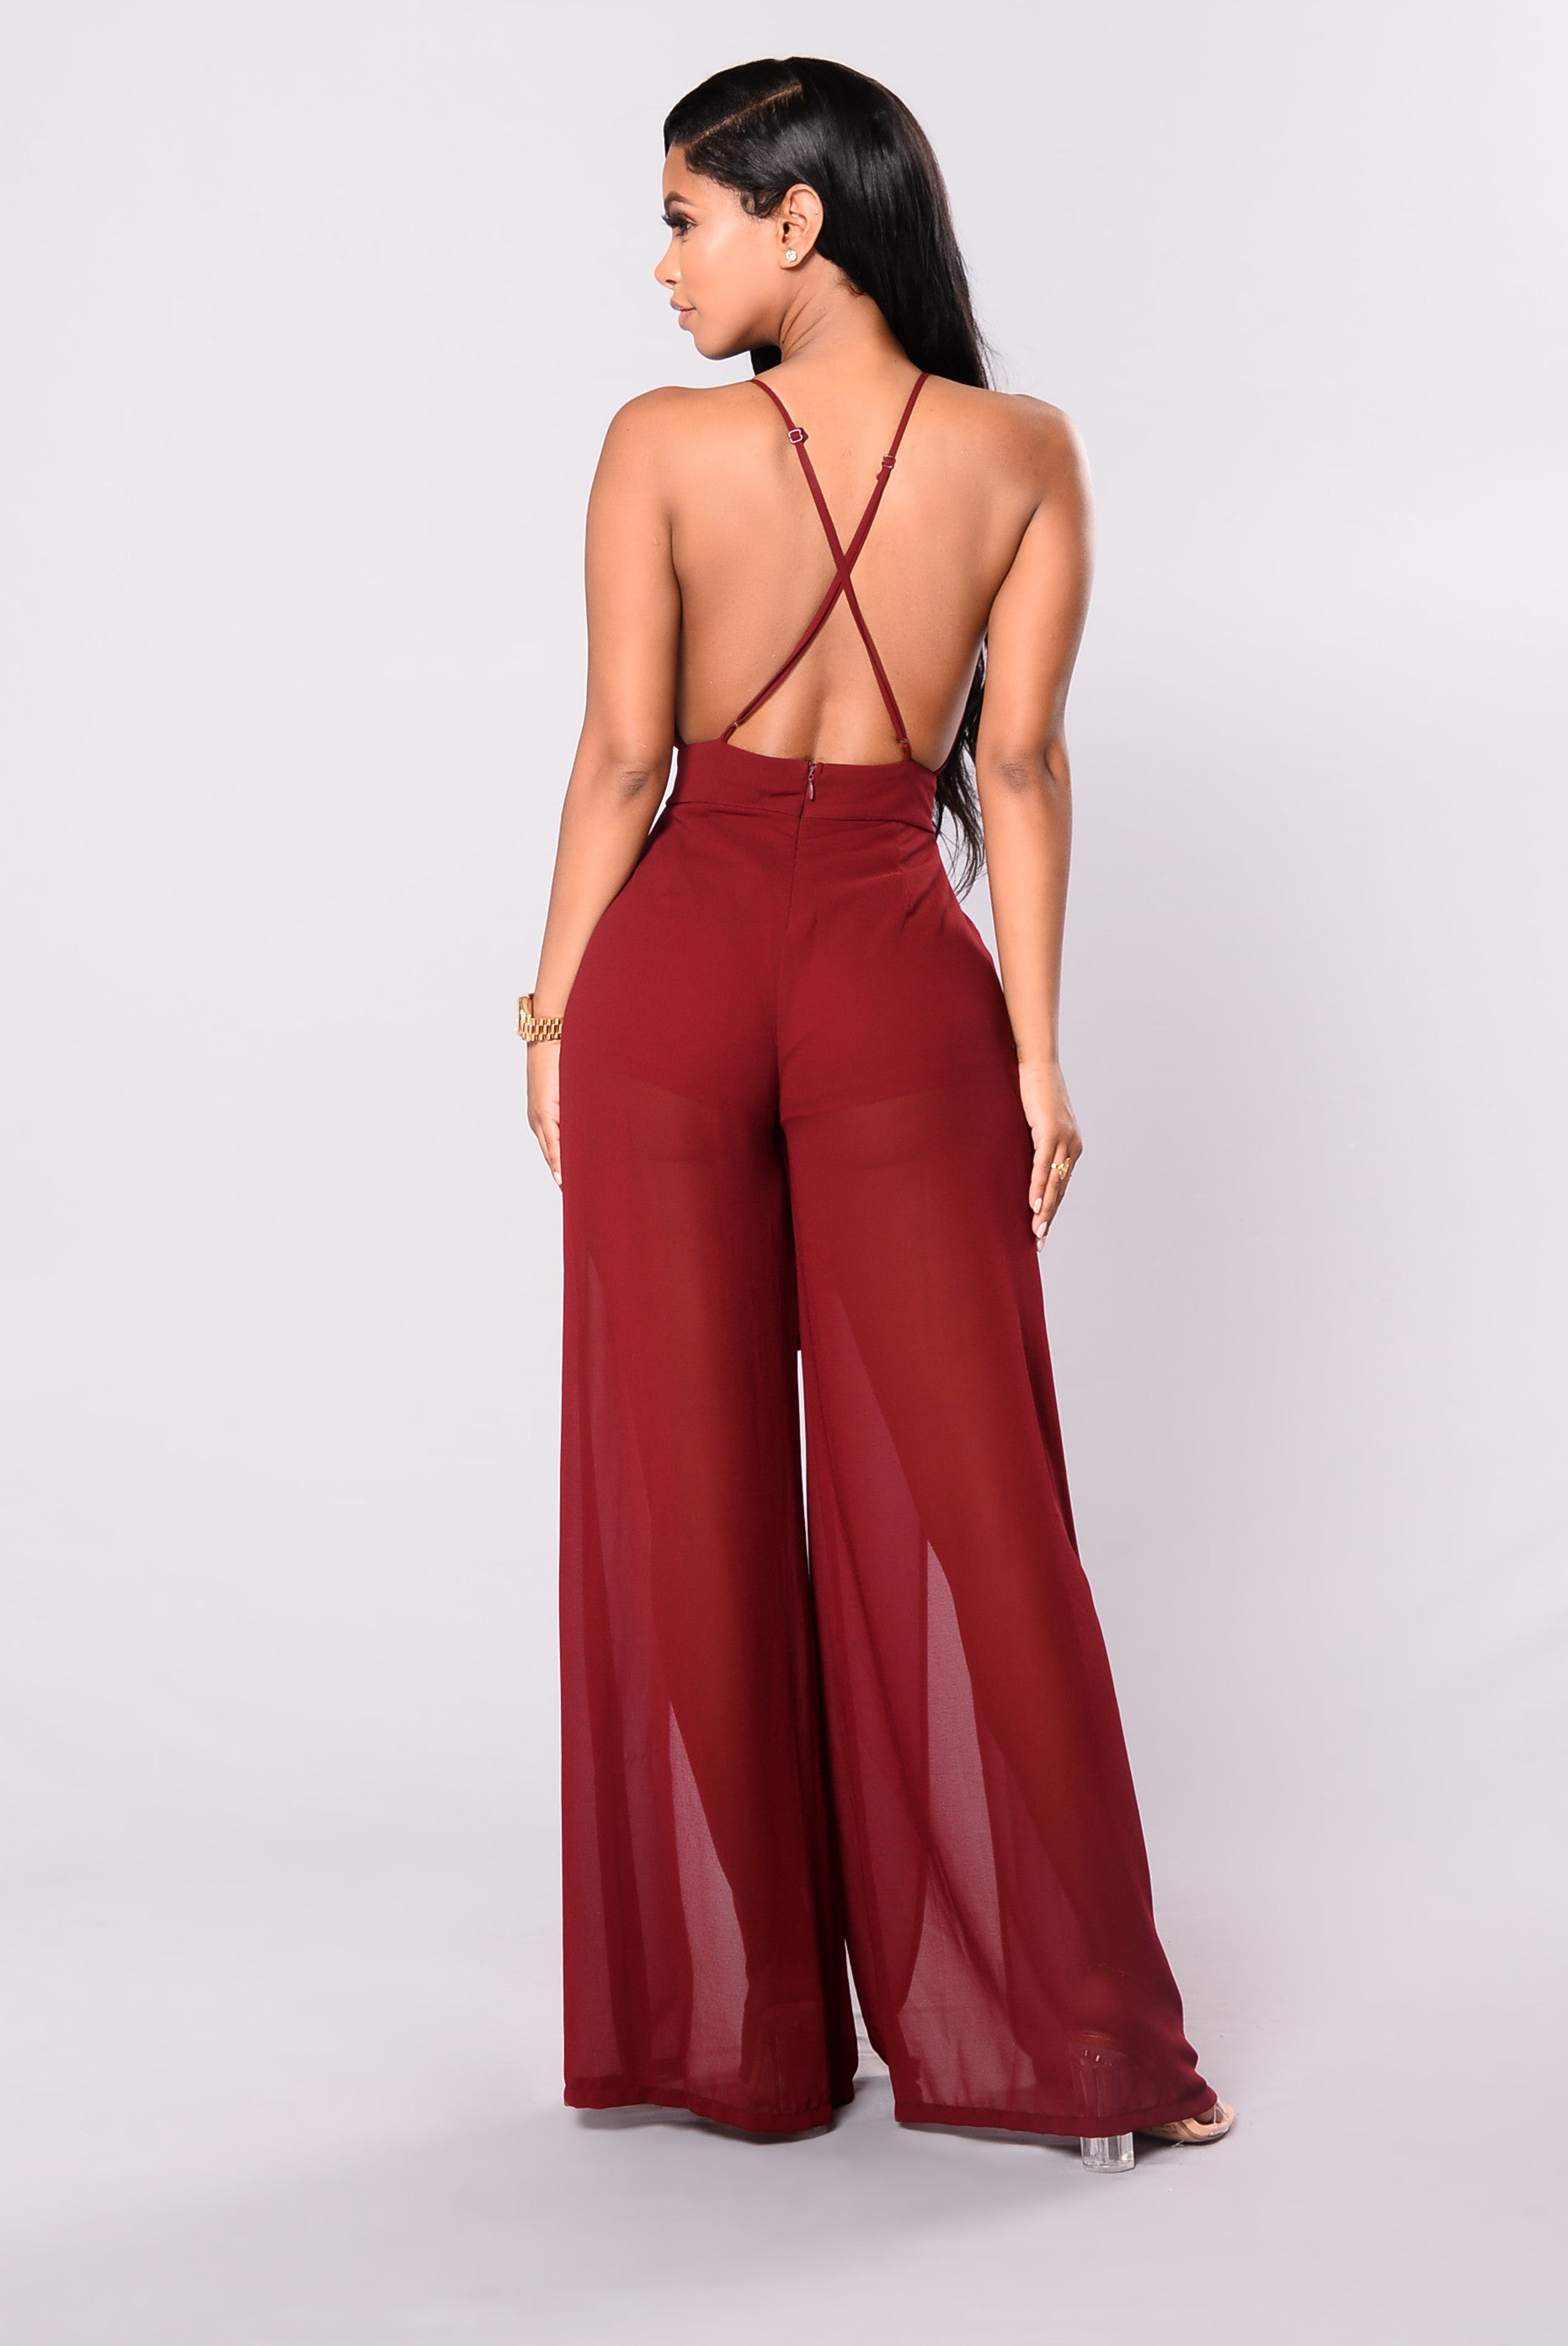 b13c0f778835 Chiffon jumpsuit fashion dresses jpg 1862x2786 Fashion nova burgundy  jumpsuit